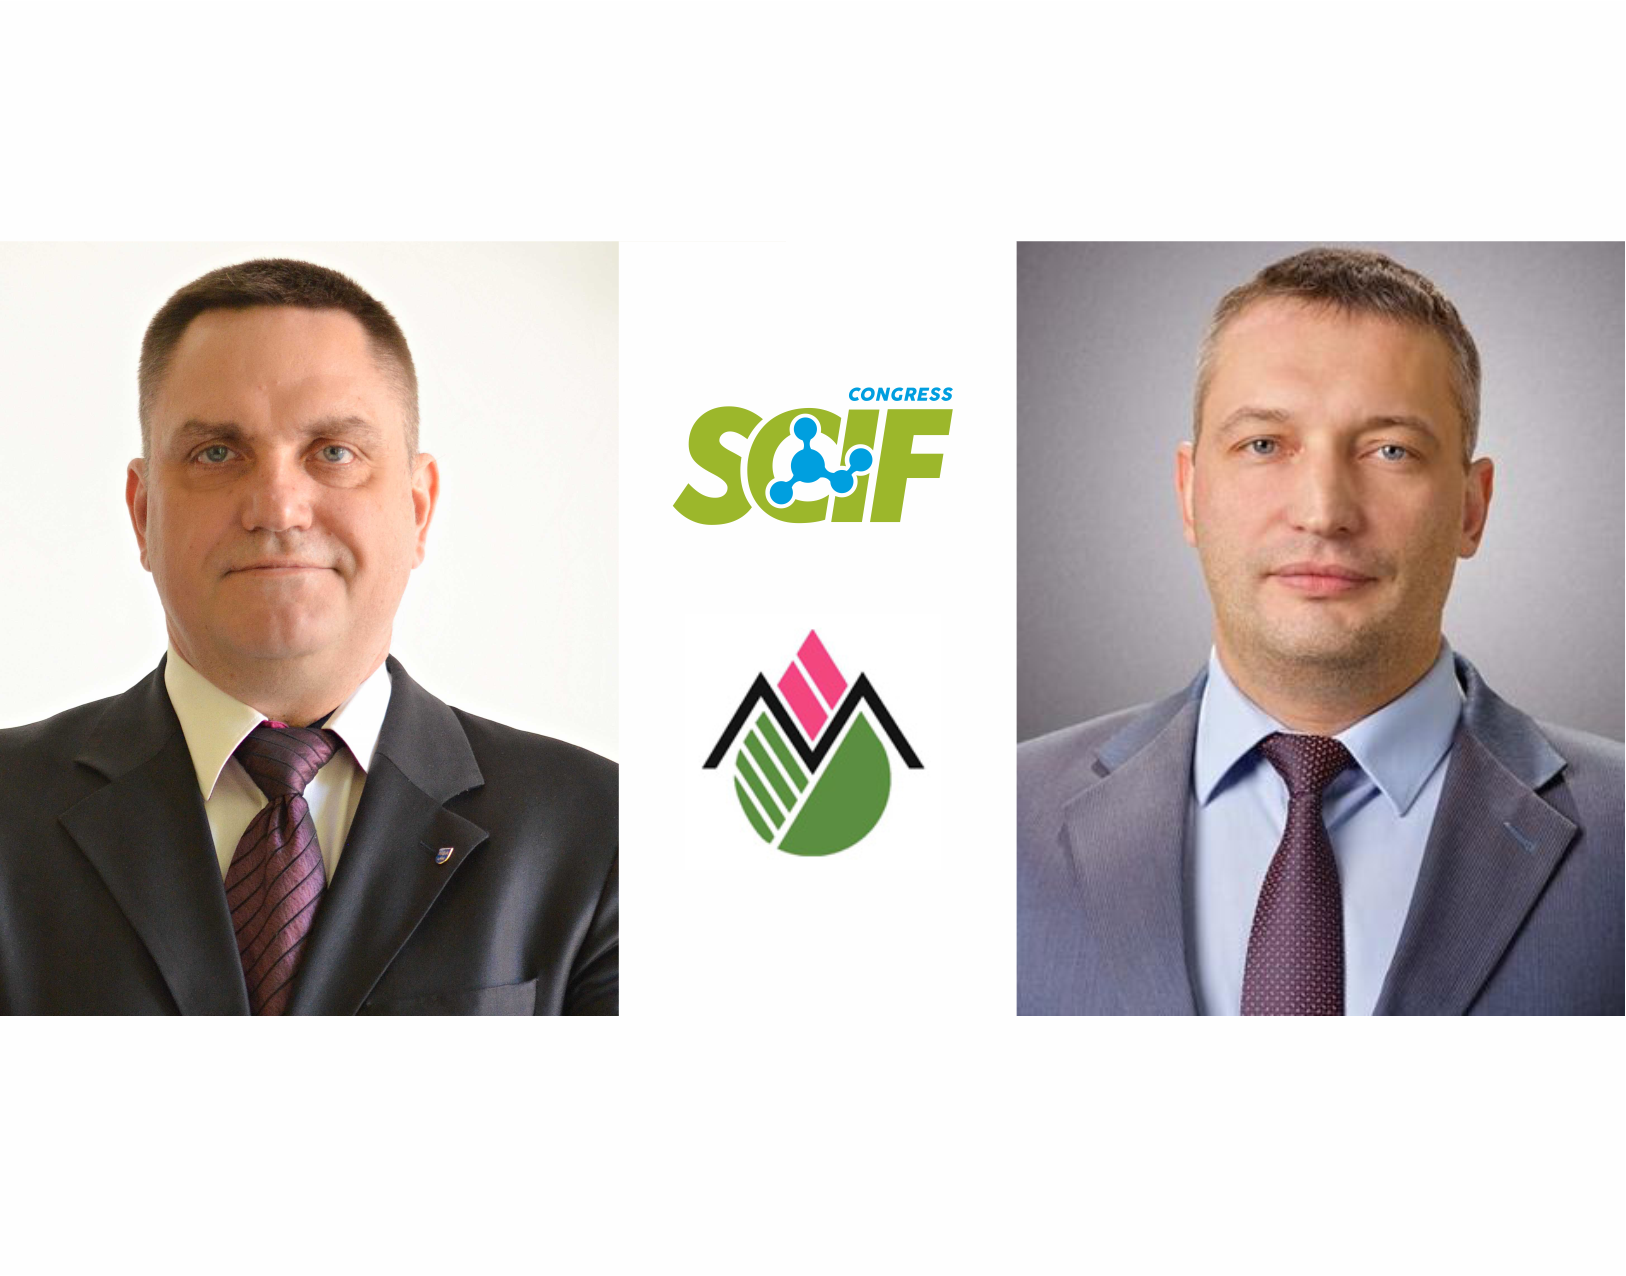 SCIF Congress and Meleuz Mineral Fertilizers JSC signed the Memorandum about cooperation